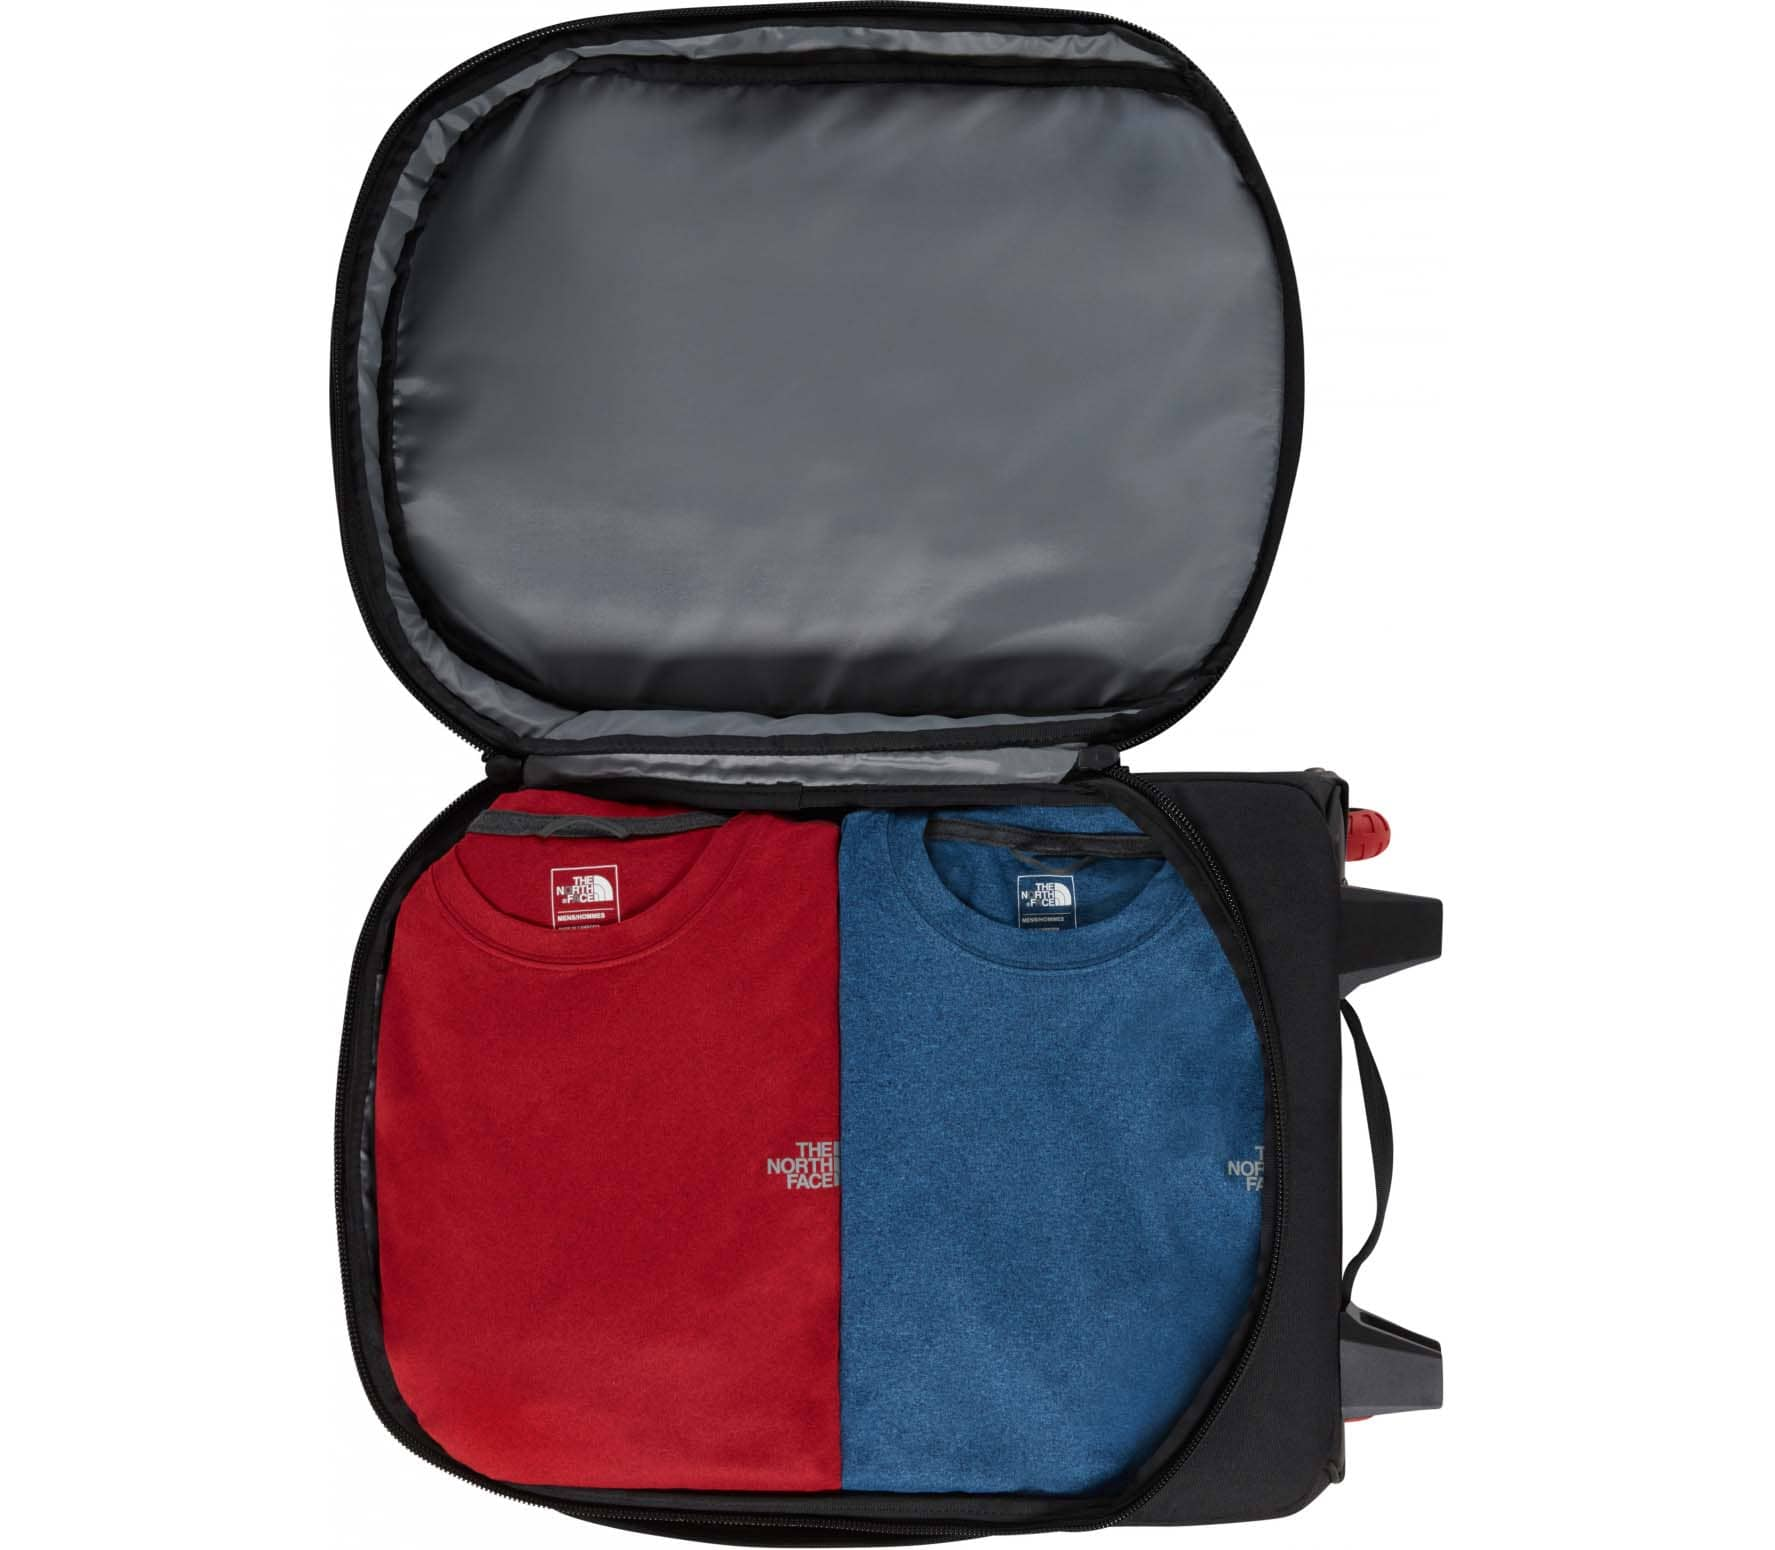 bbe6c0174 The North Face - Overhead 19 travel bag (black)